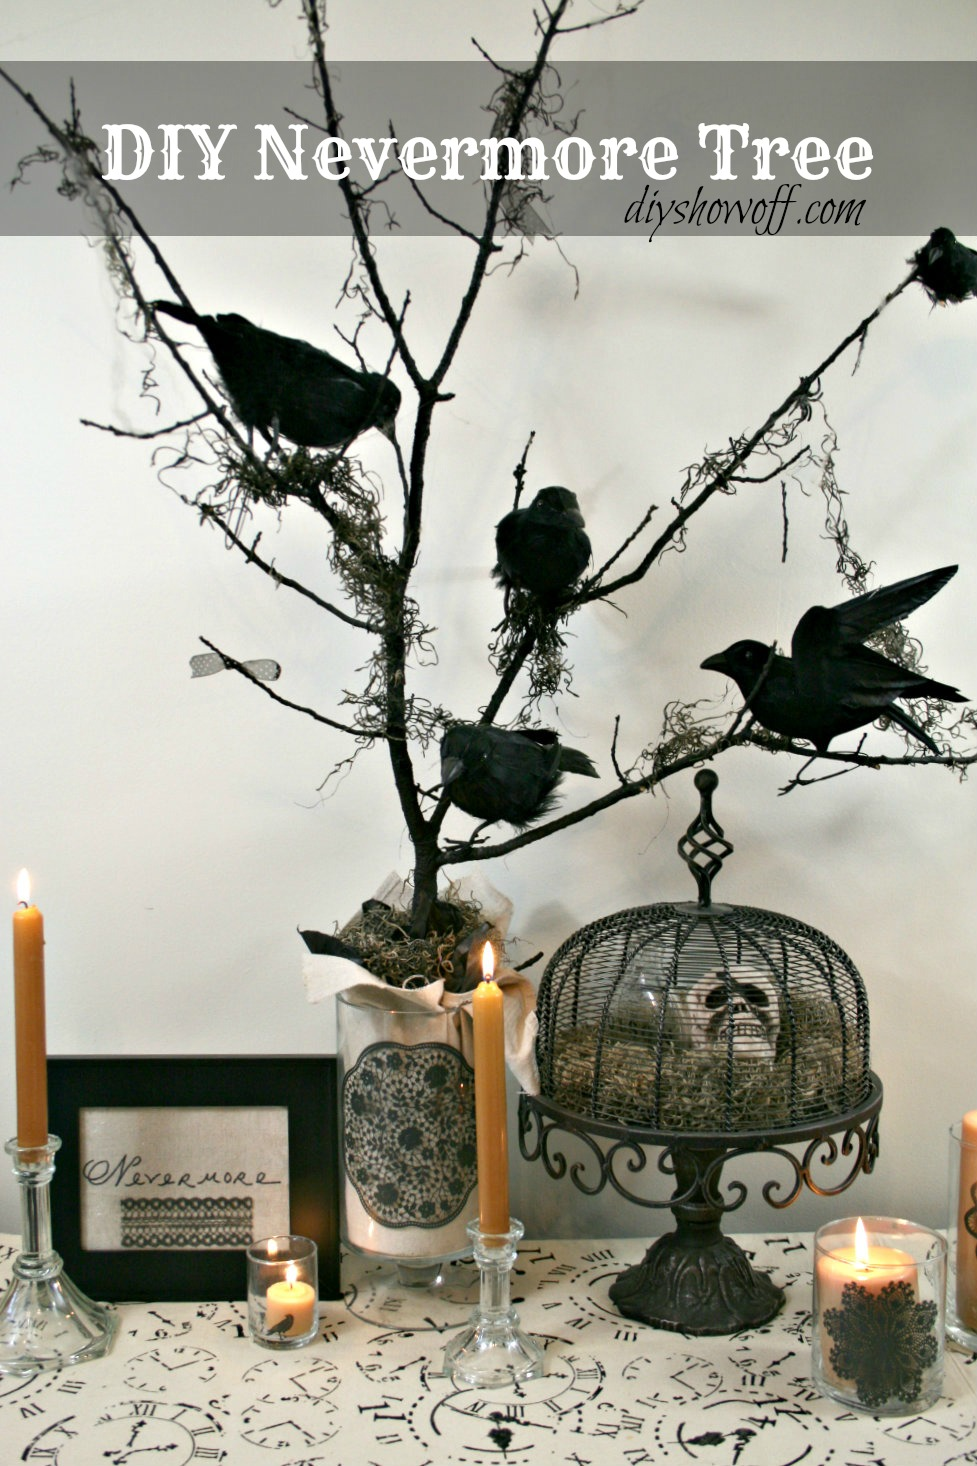 Halloween archives diy show off diy decorating and home diy halloween nevermore tree solutioingenieria Images